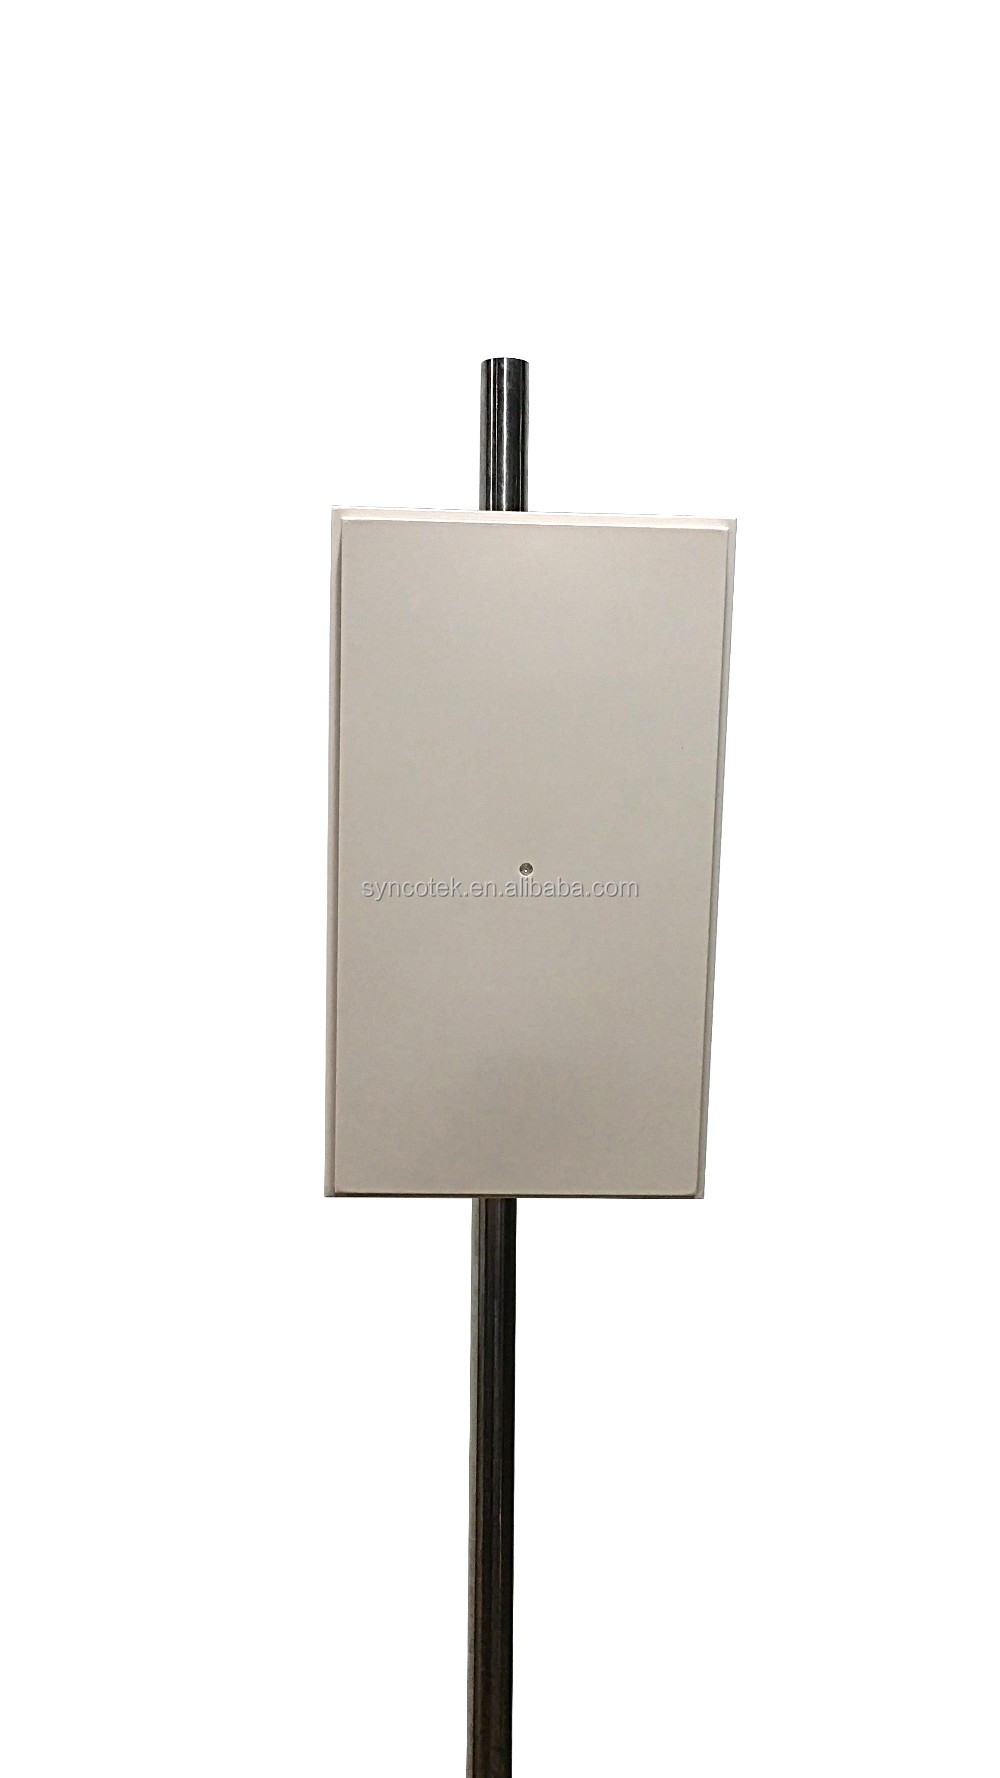 Middle Range UHF RFID Reader For Vehicle Identication (AVI)